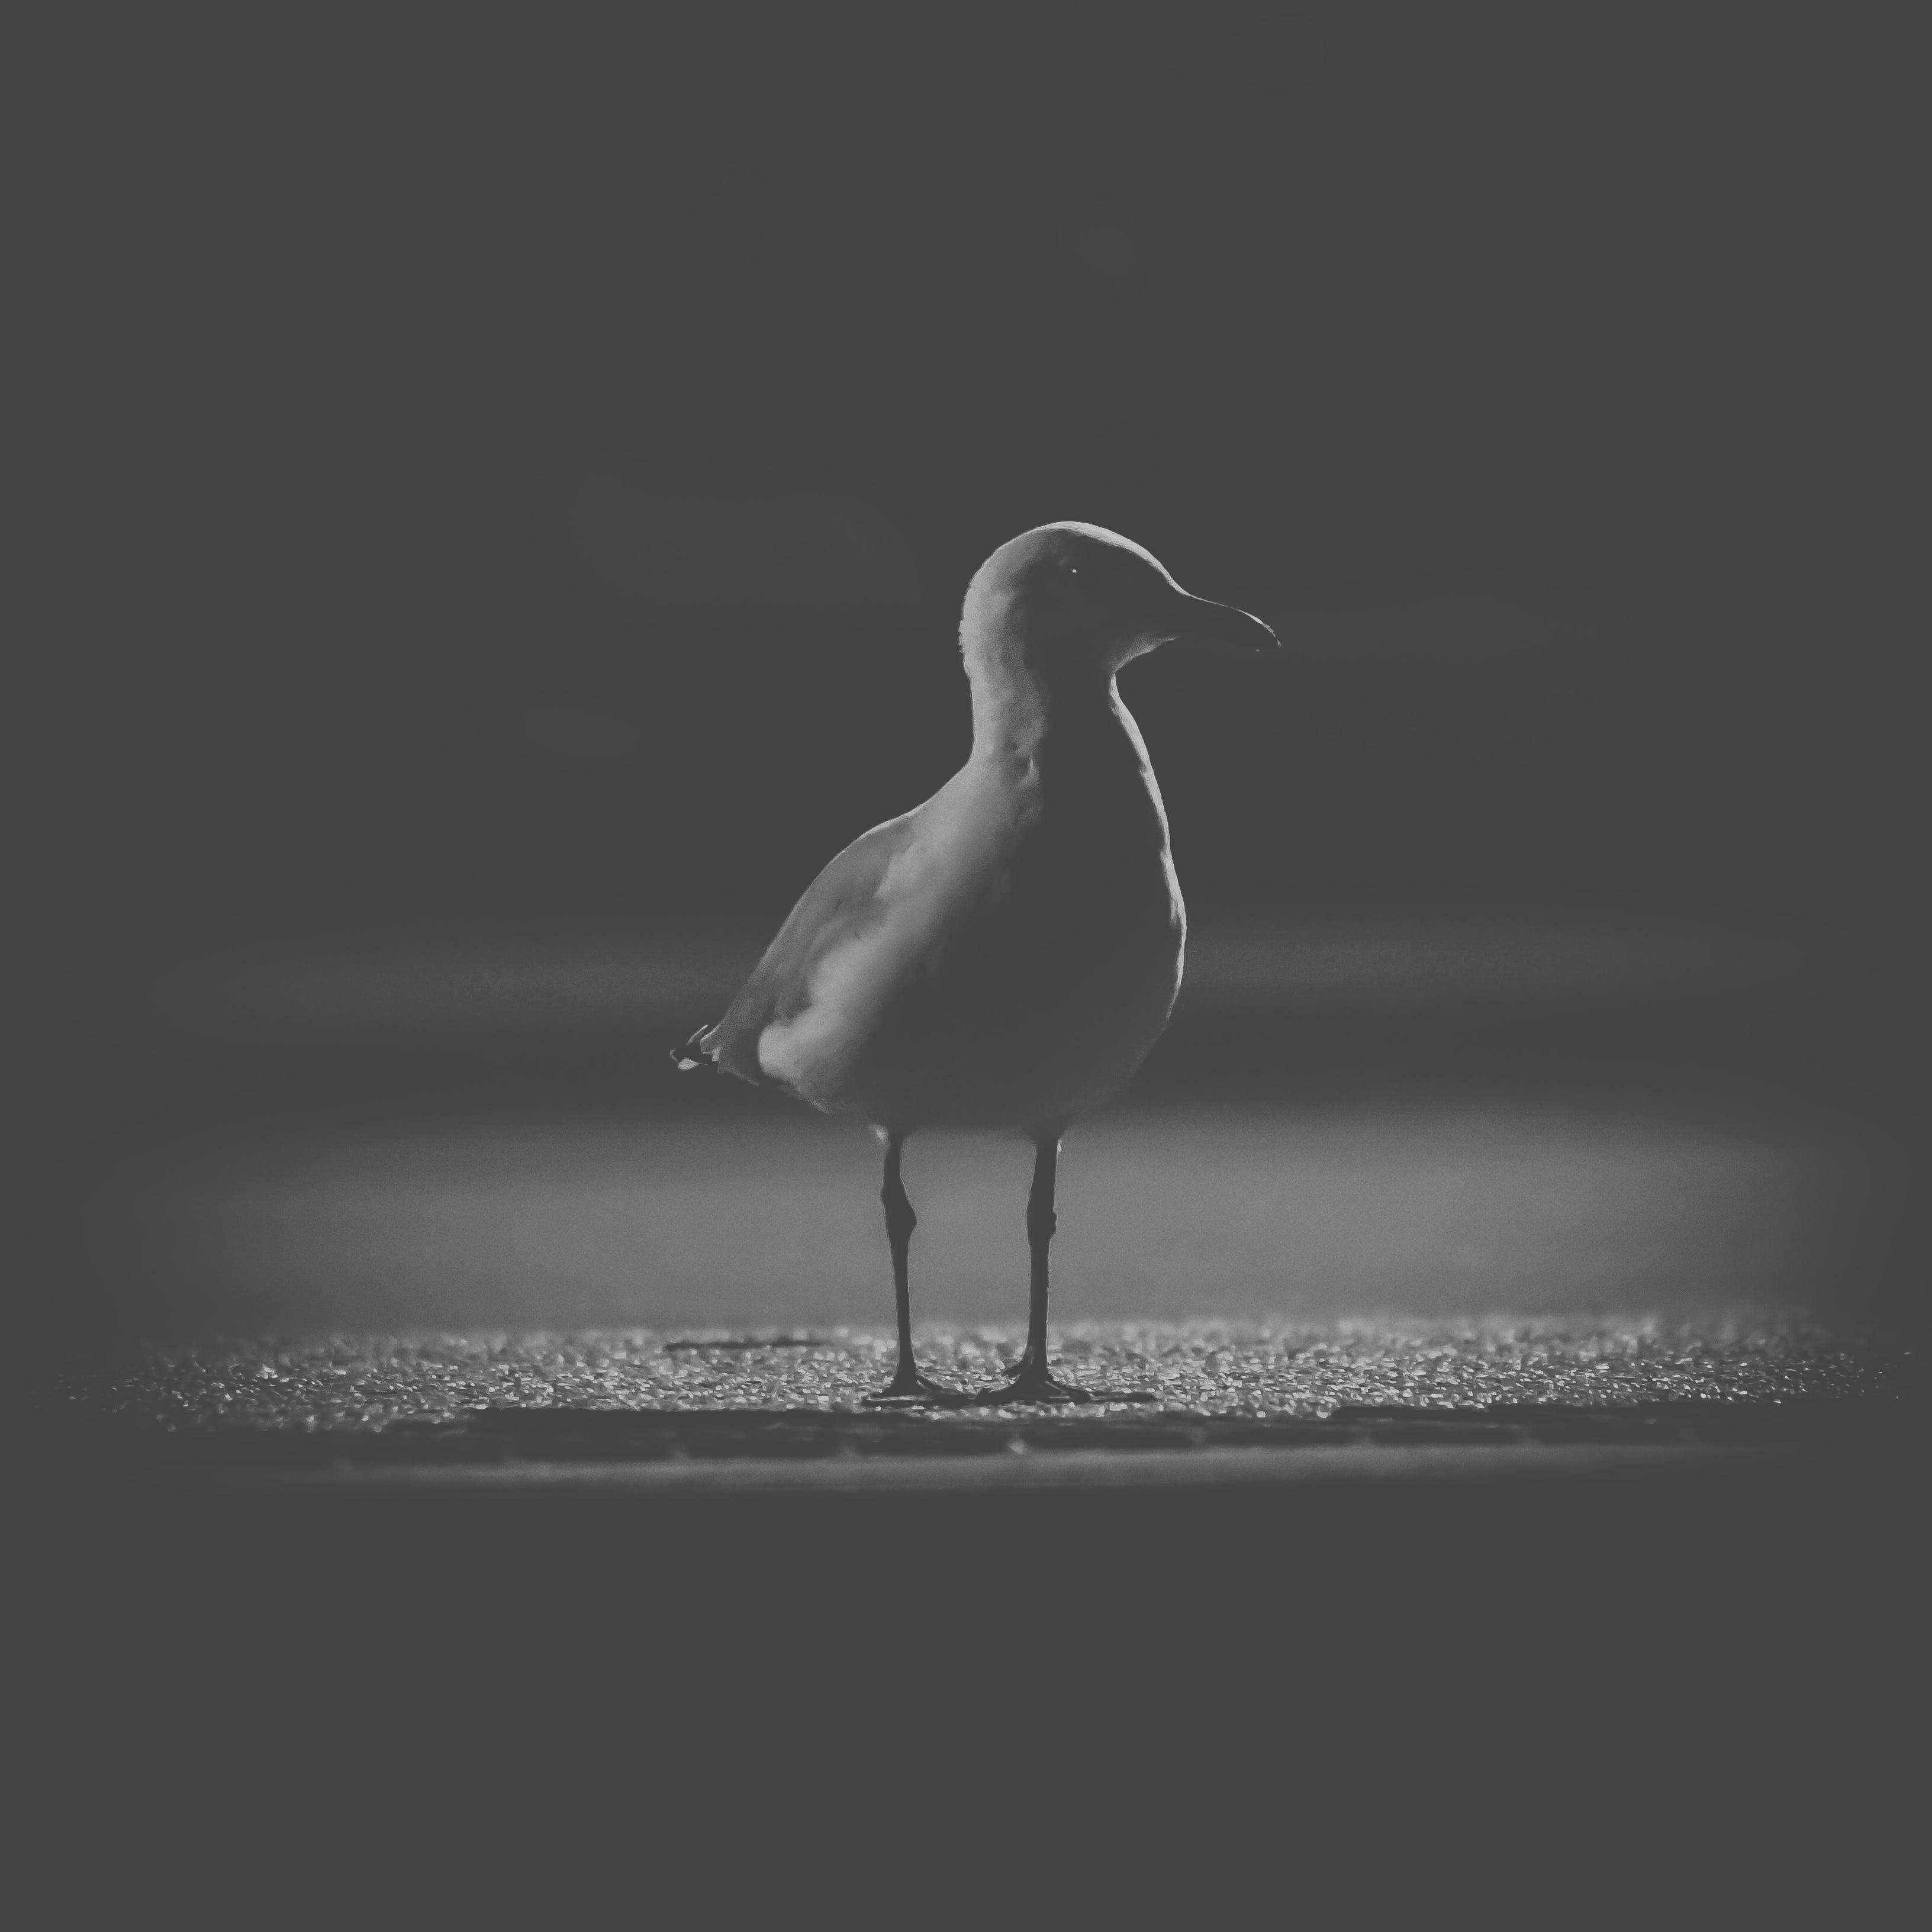 Free stock photo of black and white, dark, night photography, sea bird